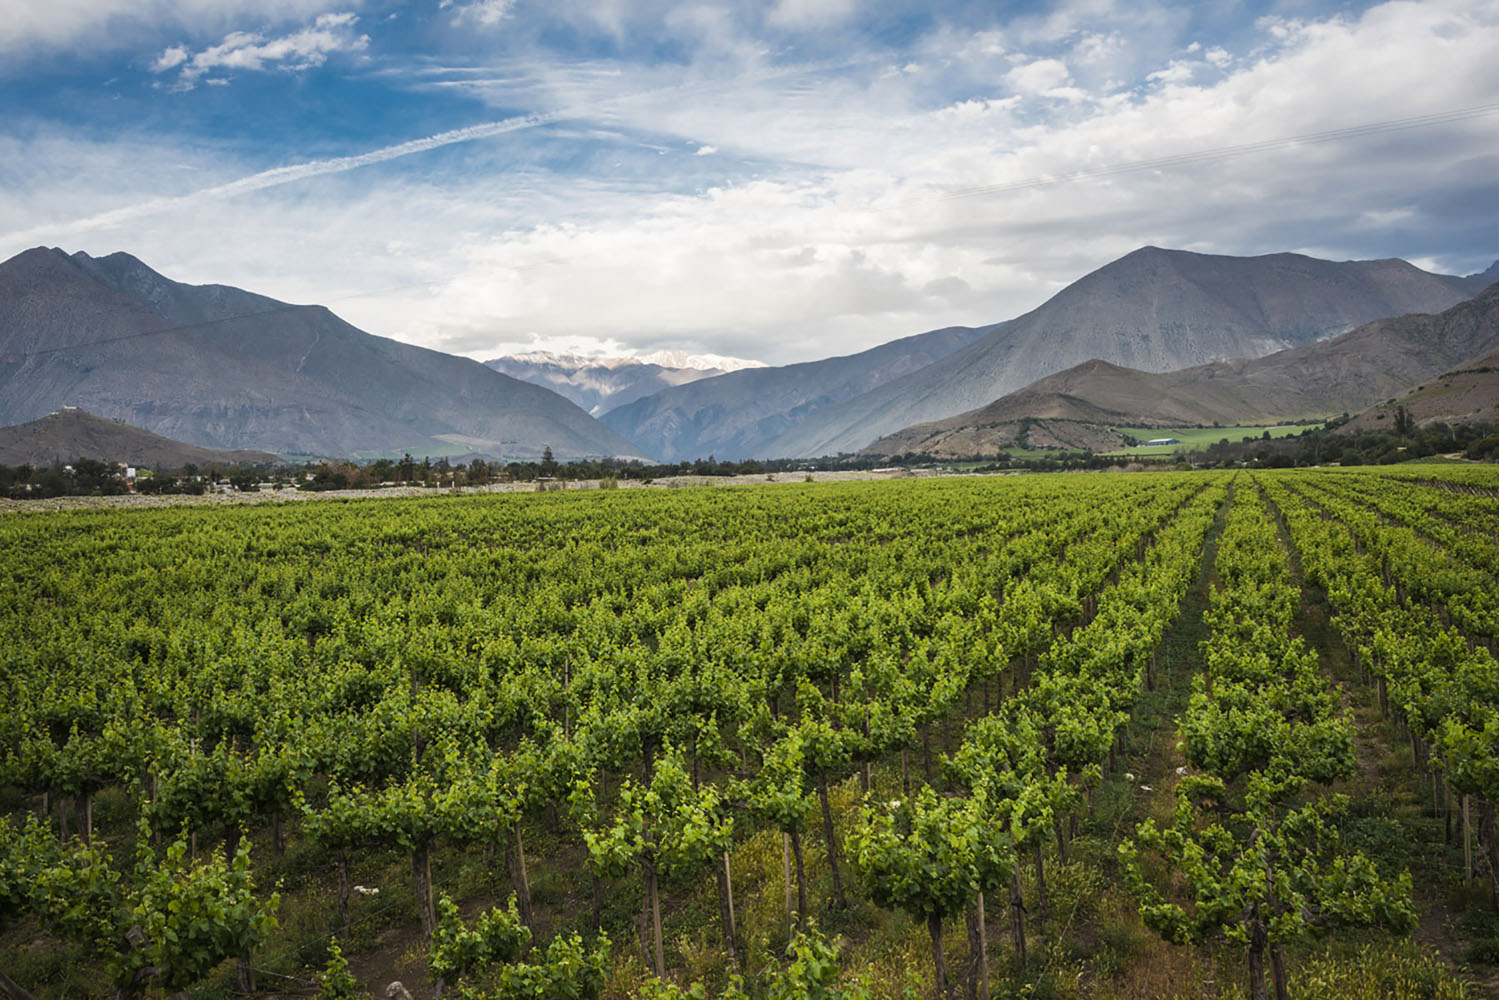 Vineyards in Chile.